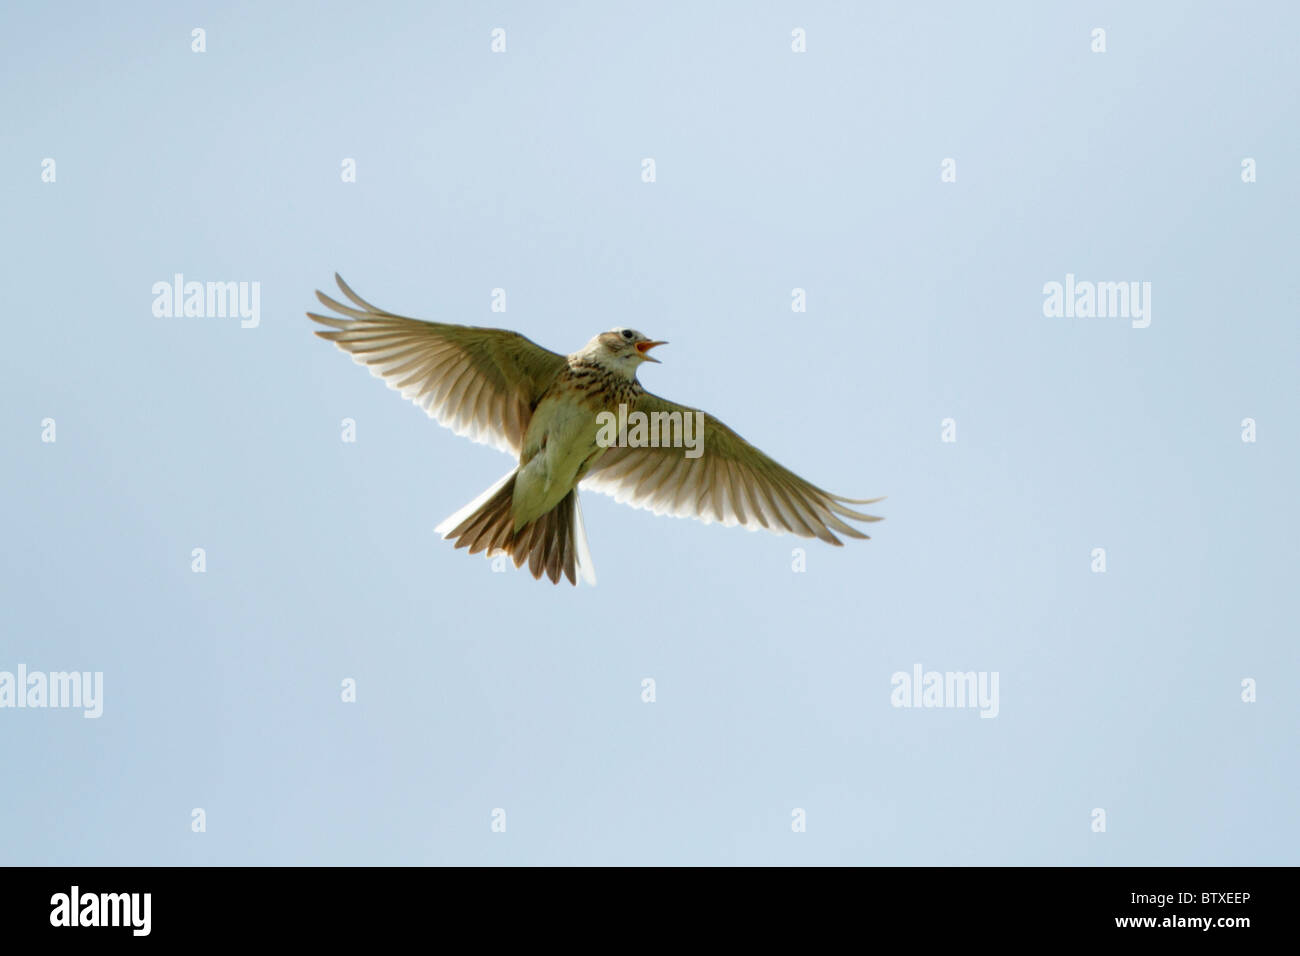 Skylark (Alauda arvensis), singing on the wing, Germany - Stock Image